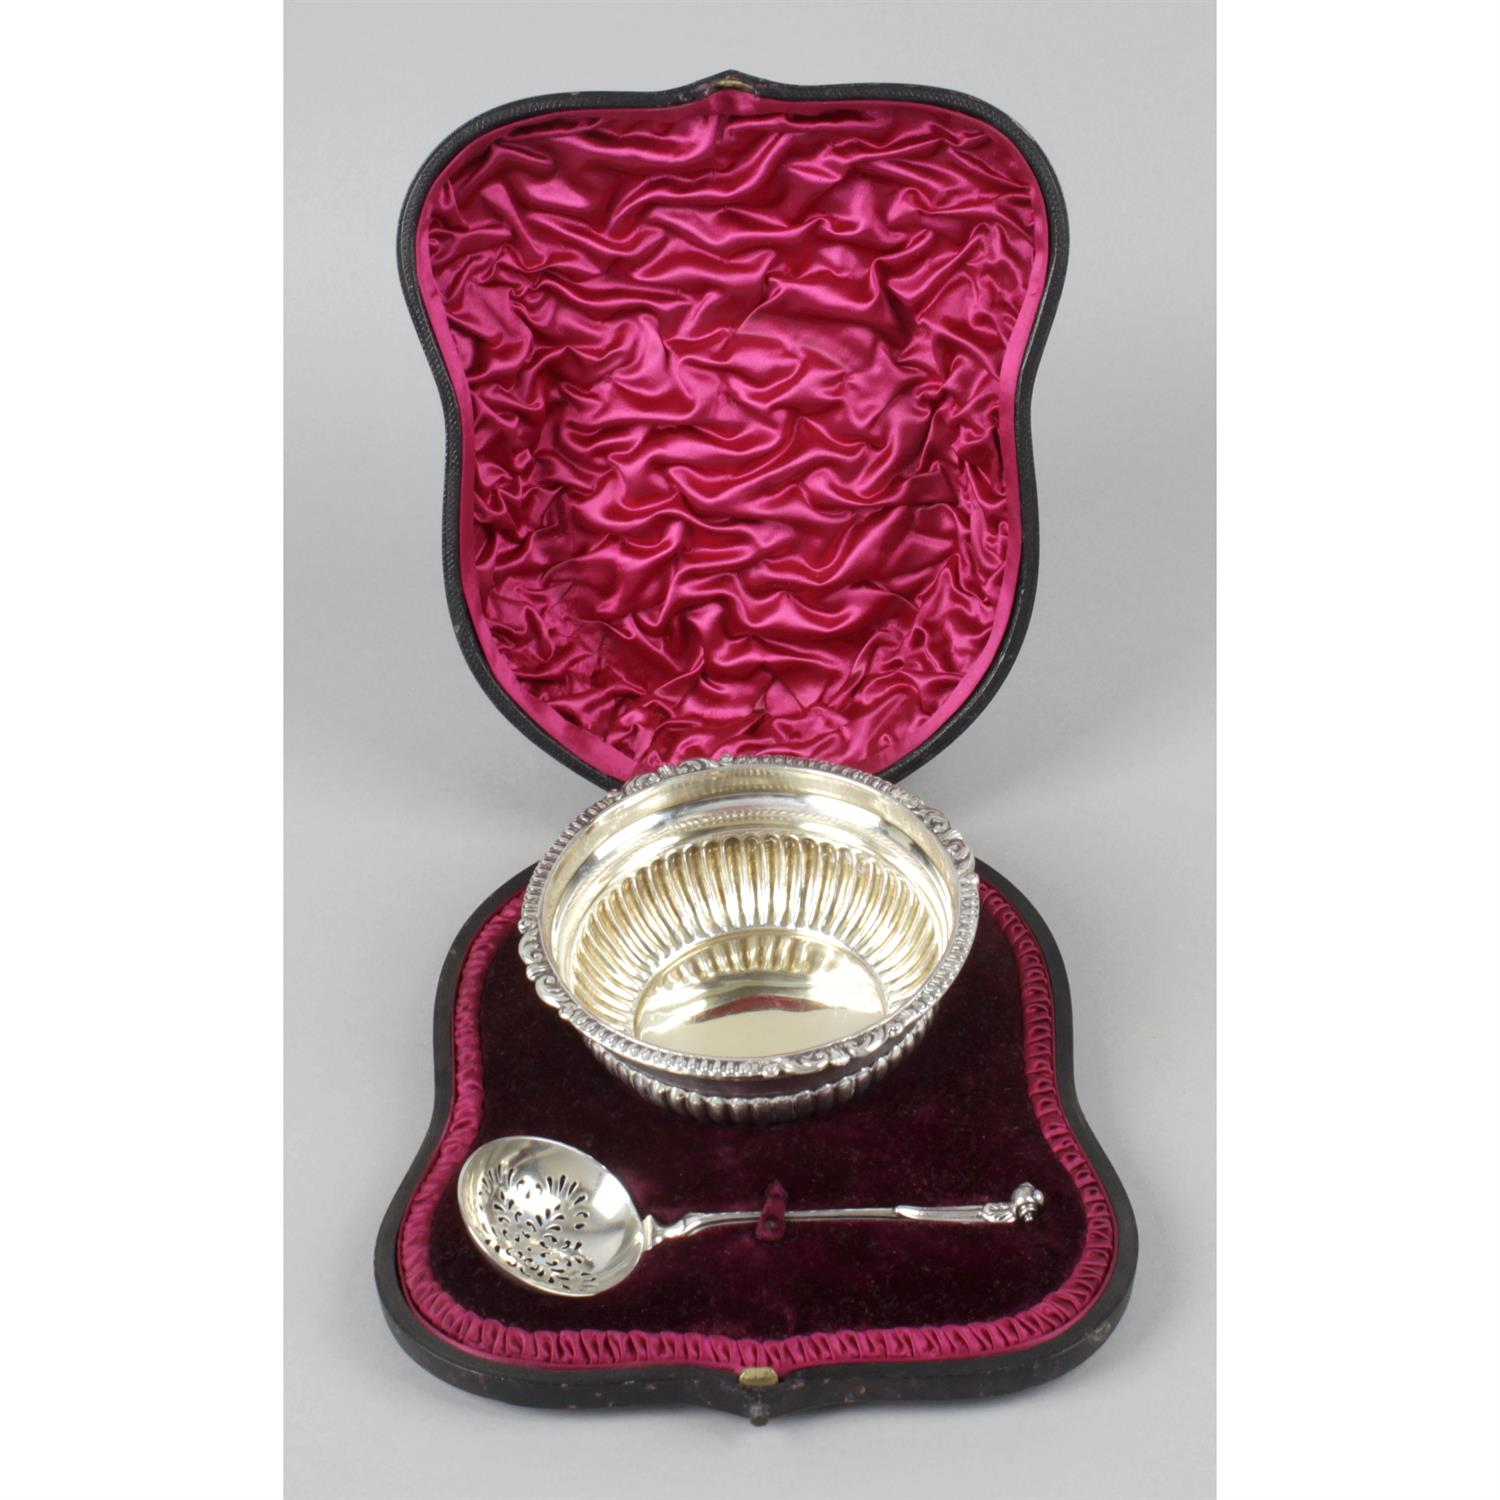 A late Victorian silver sugar bowl and sifter spoon, in fitted case.